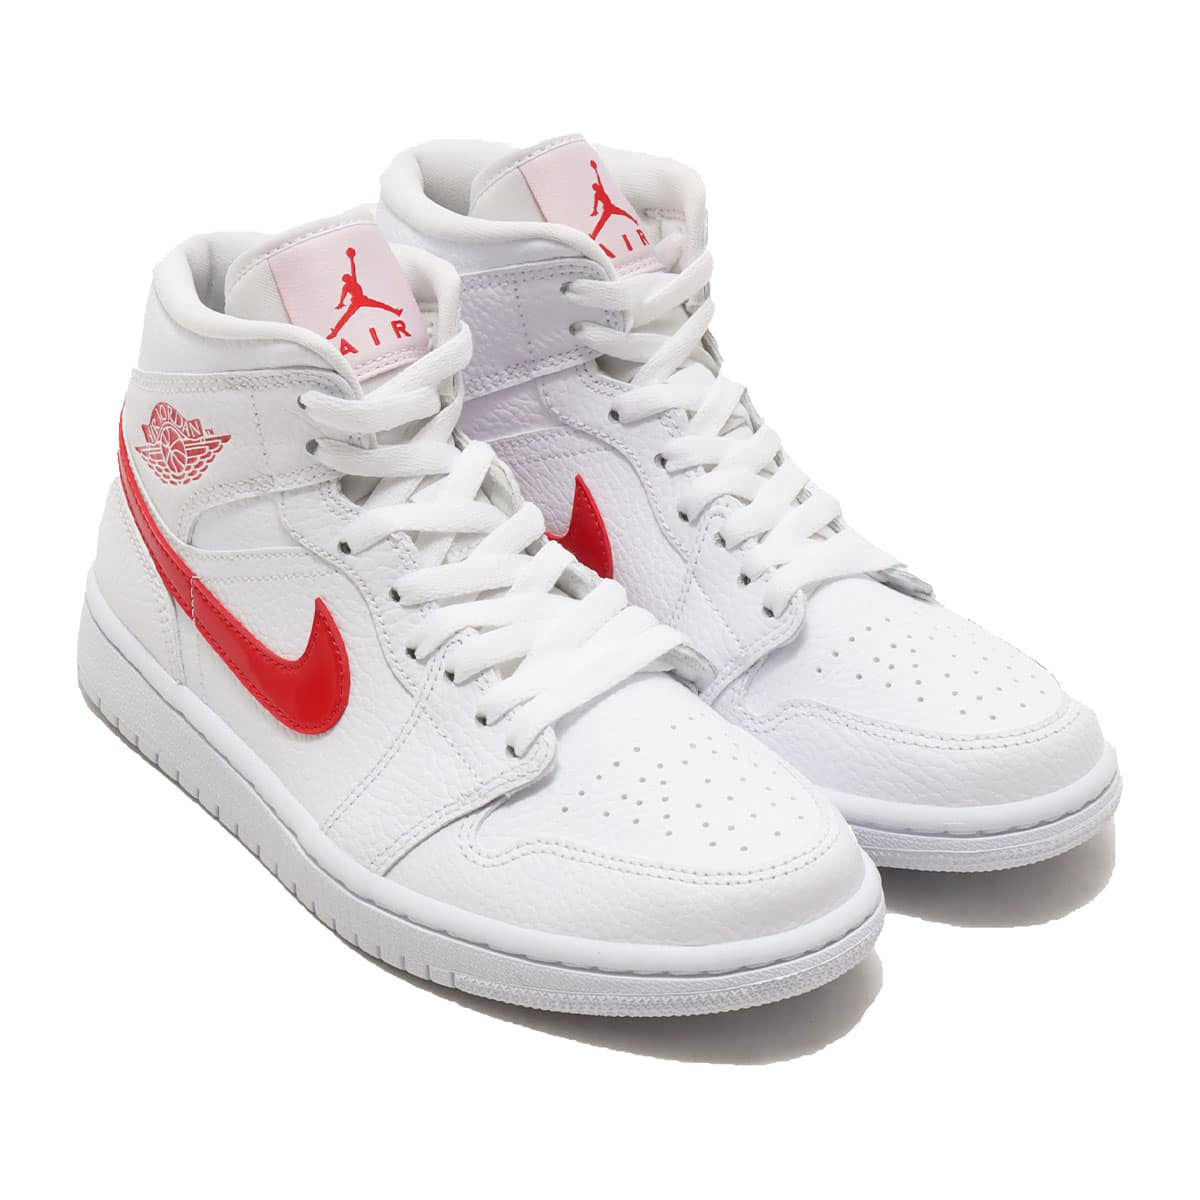 JORDAN BRAND WMNS AIR JORDAN 1 MID WHITE/UNIVERSITY RED 20FA-I_photo_large